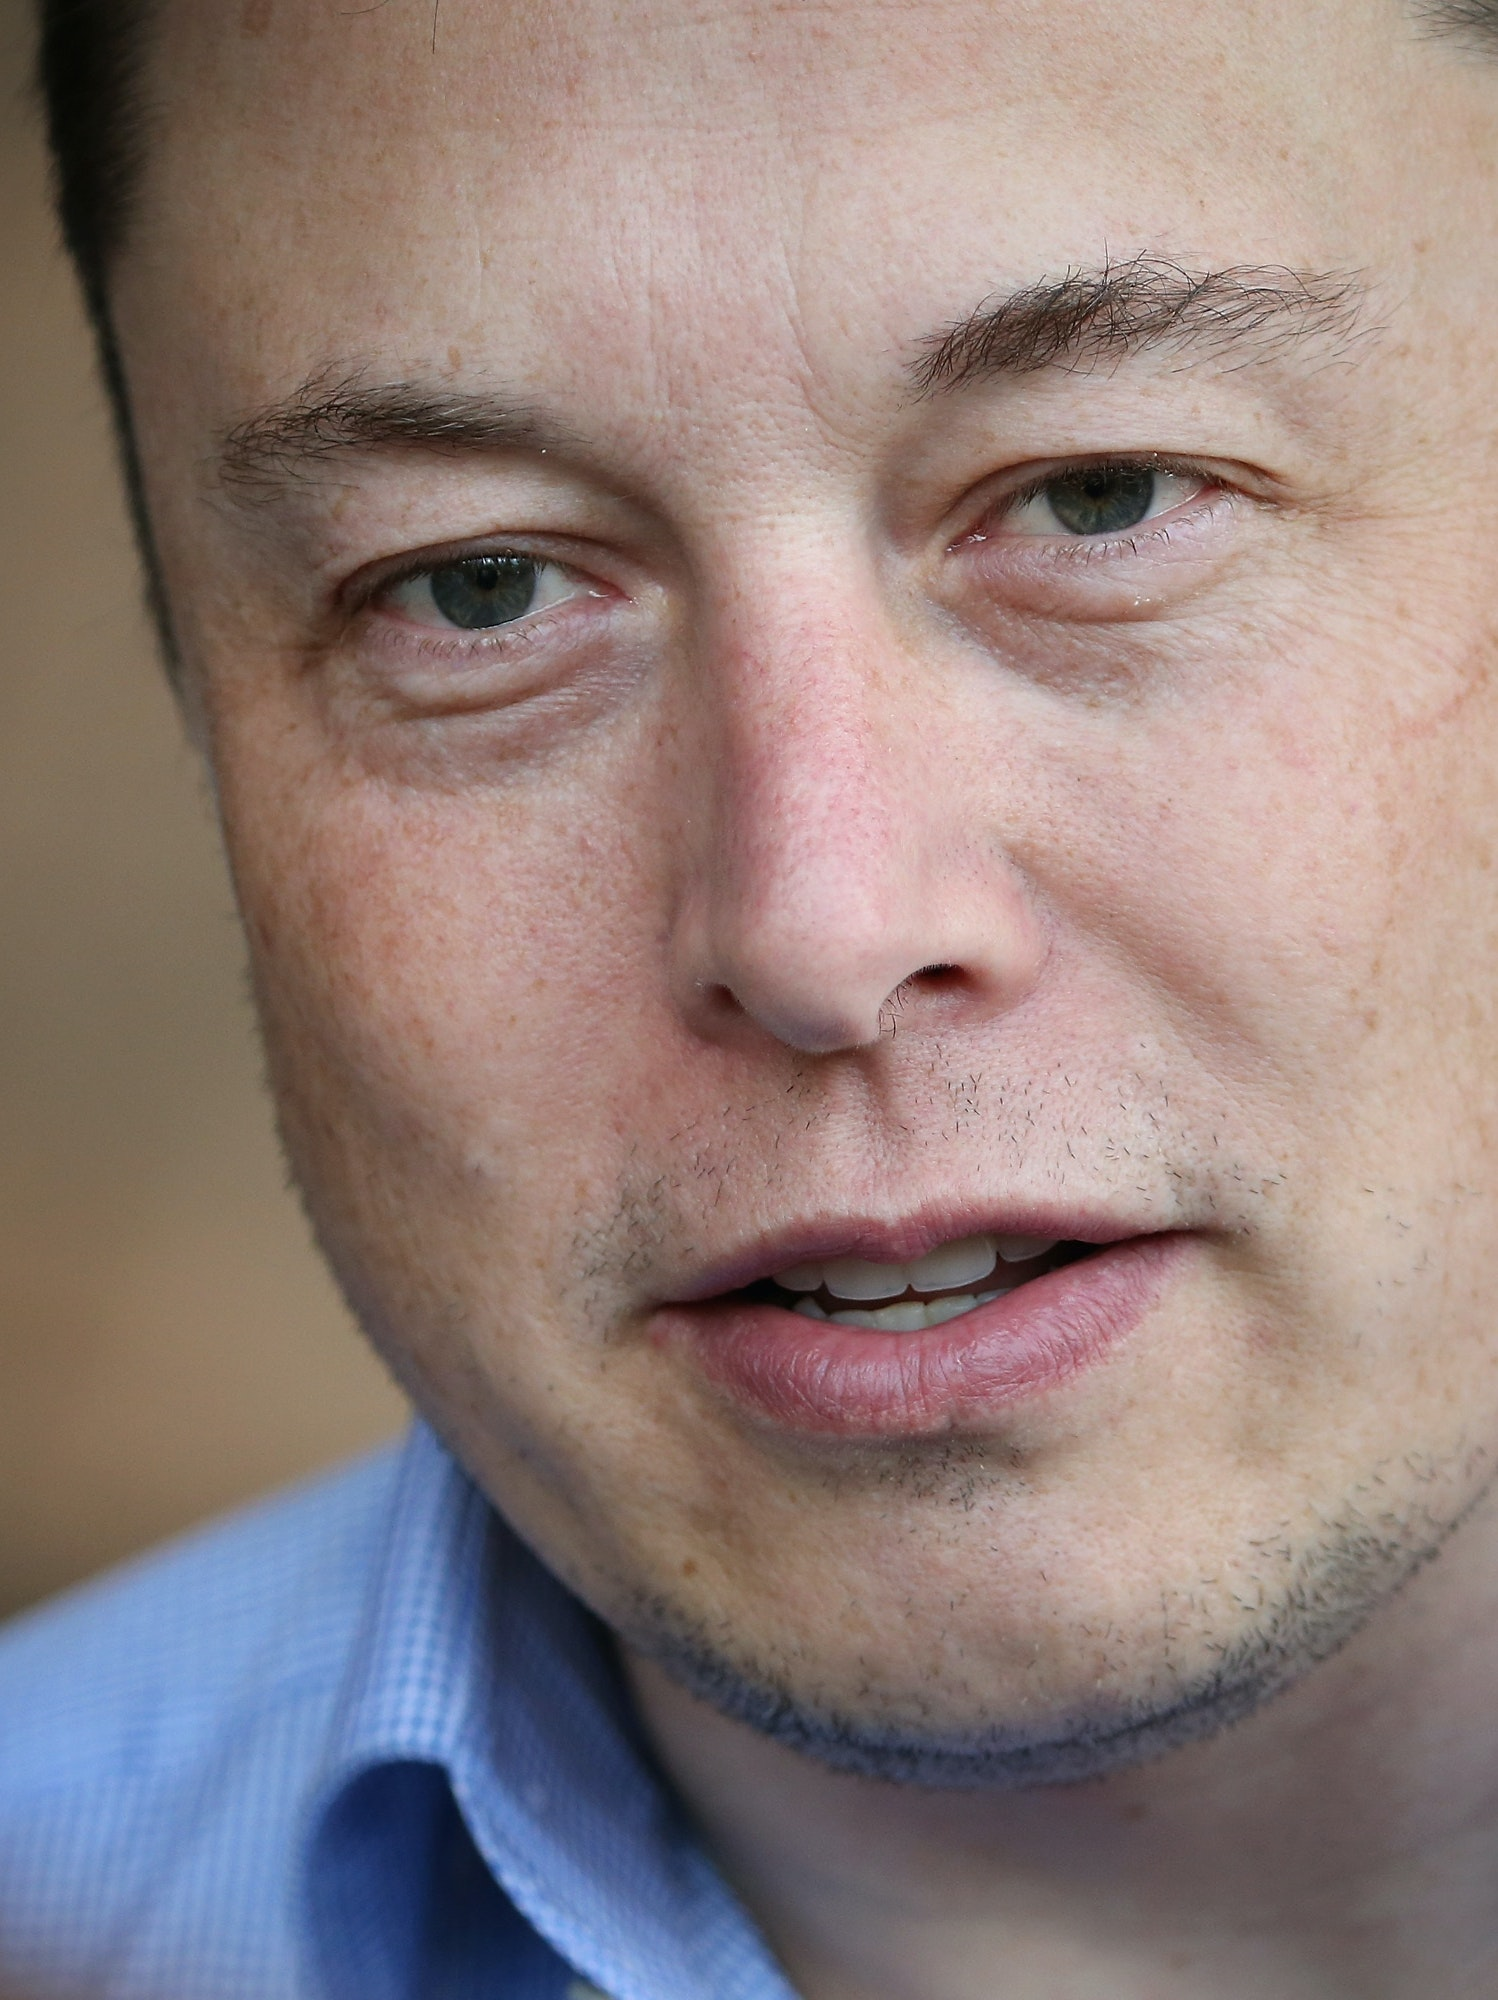 SUN VALLEY, ID - JULY 07:  Elon Musk, CEO and CTO of SpaceX, CEO and product architect of Tesla Motors, and chairman of SolarCity, attends the Allen & Company Sun Valley Conference on July 7, 2015 in Sun Valley, Idaho. Many of the worlds wealthiest and most powerful business people from media, finance, and technology attend the annual week-long conference which is in its 33nd year.  (Photo by Scott Olson/Getty Images)